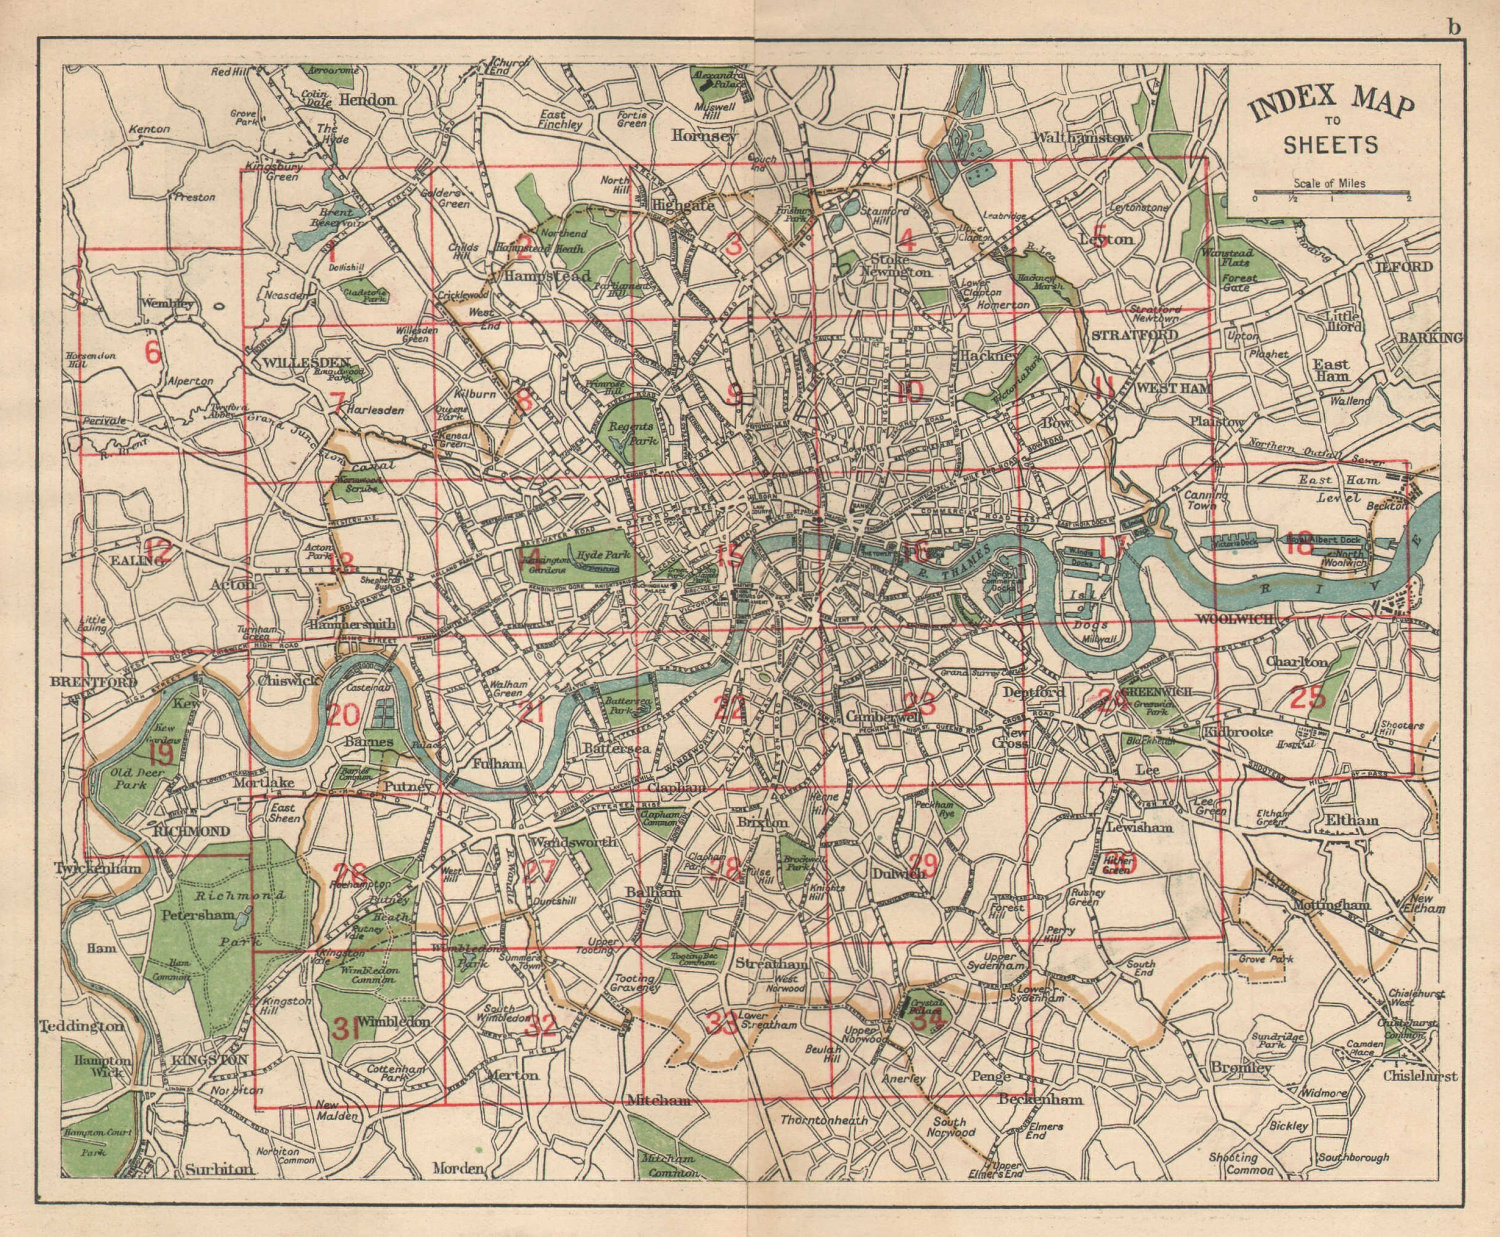 LONDON. Index map. Roads. BACON 1925 old vintage plan chart